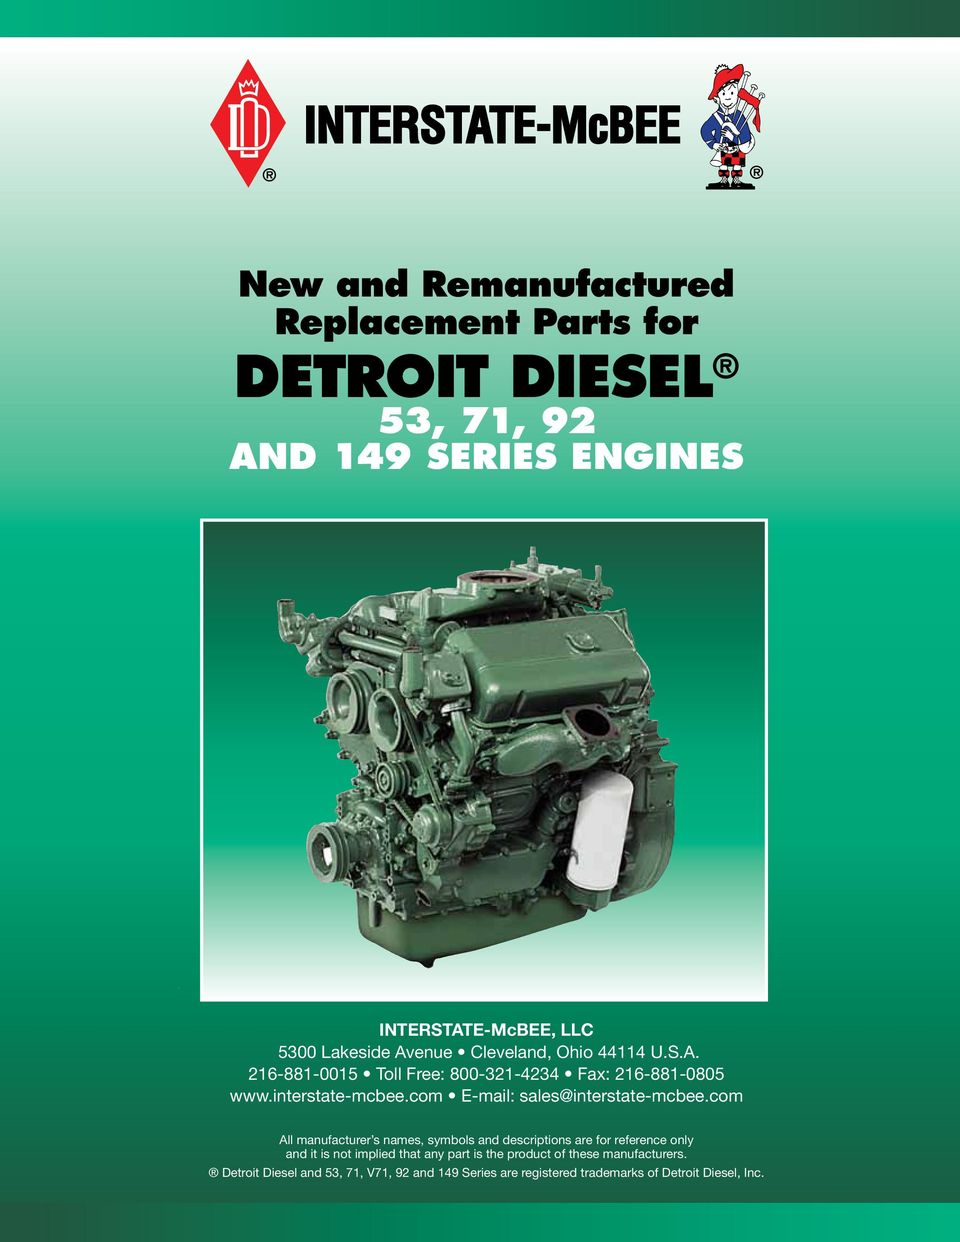 New and Remanufactured Replacement Parts for Detroit Diesel 53, 71